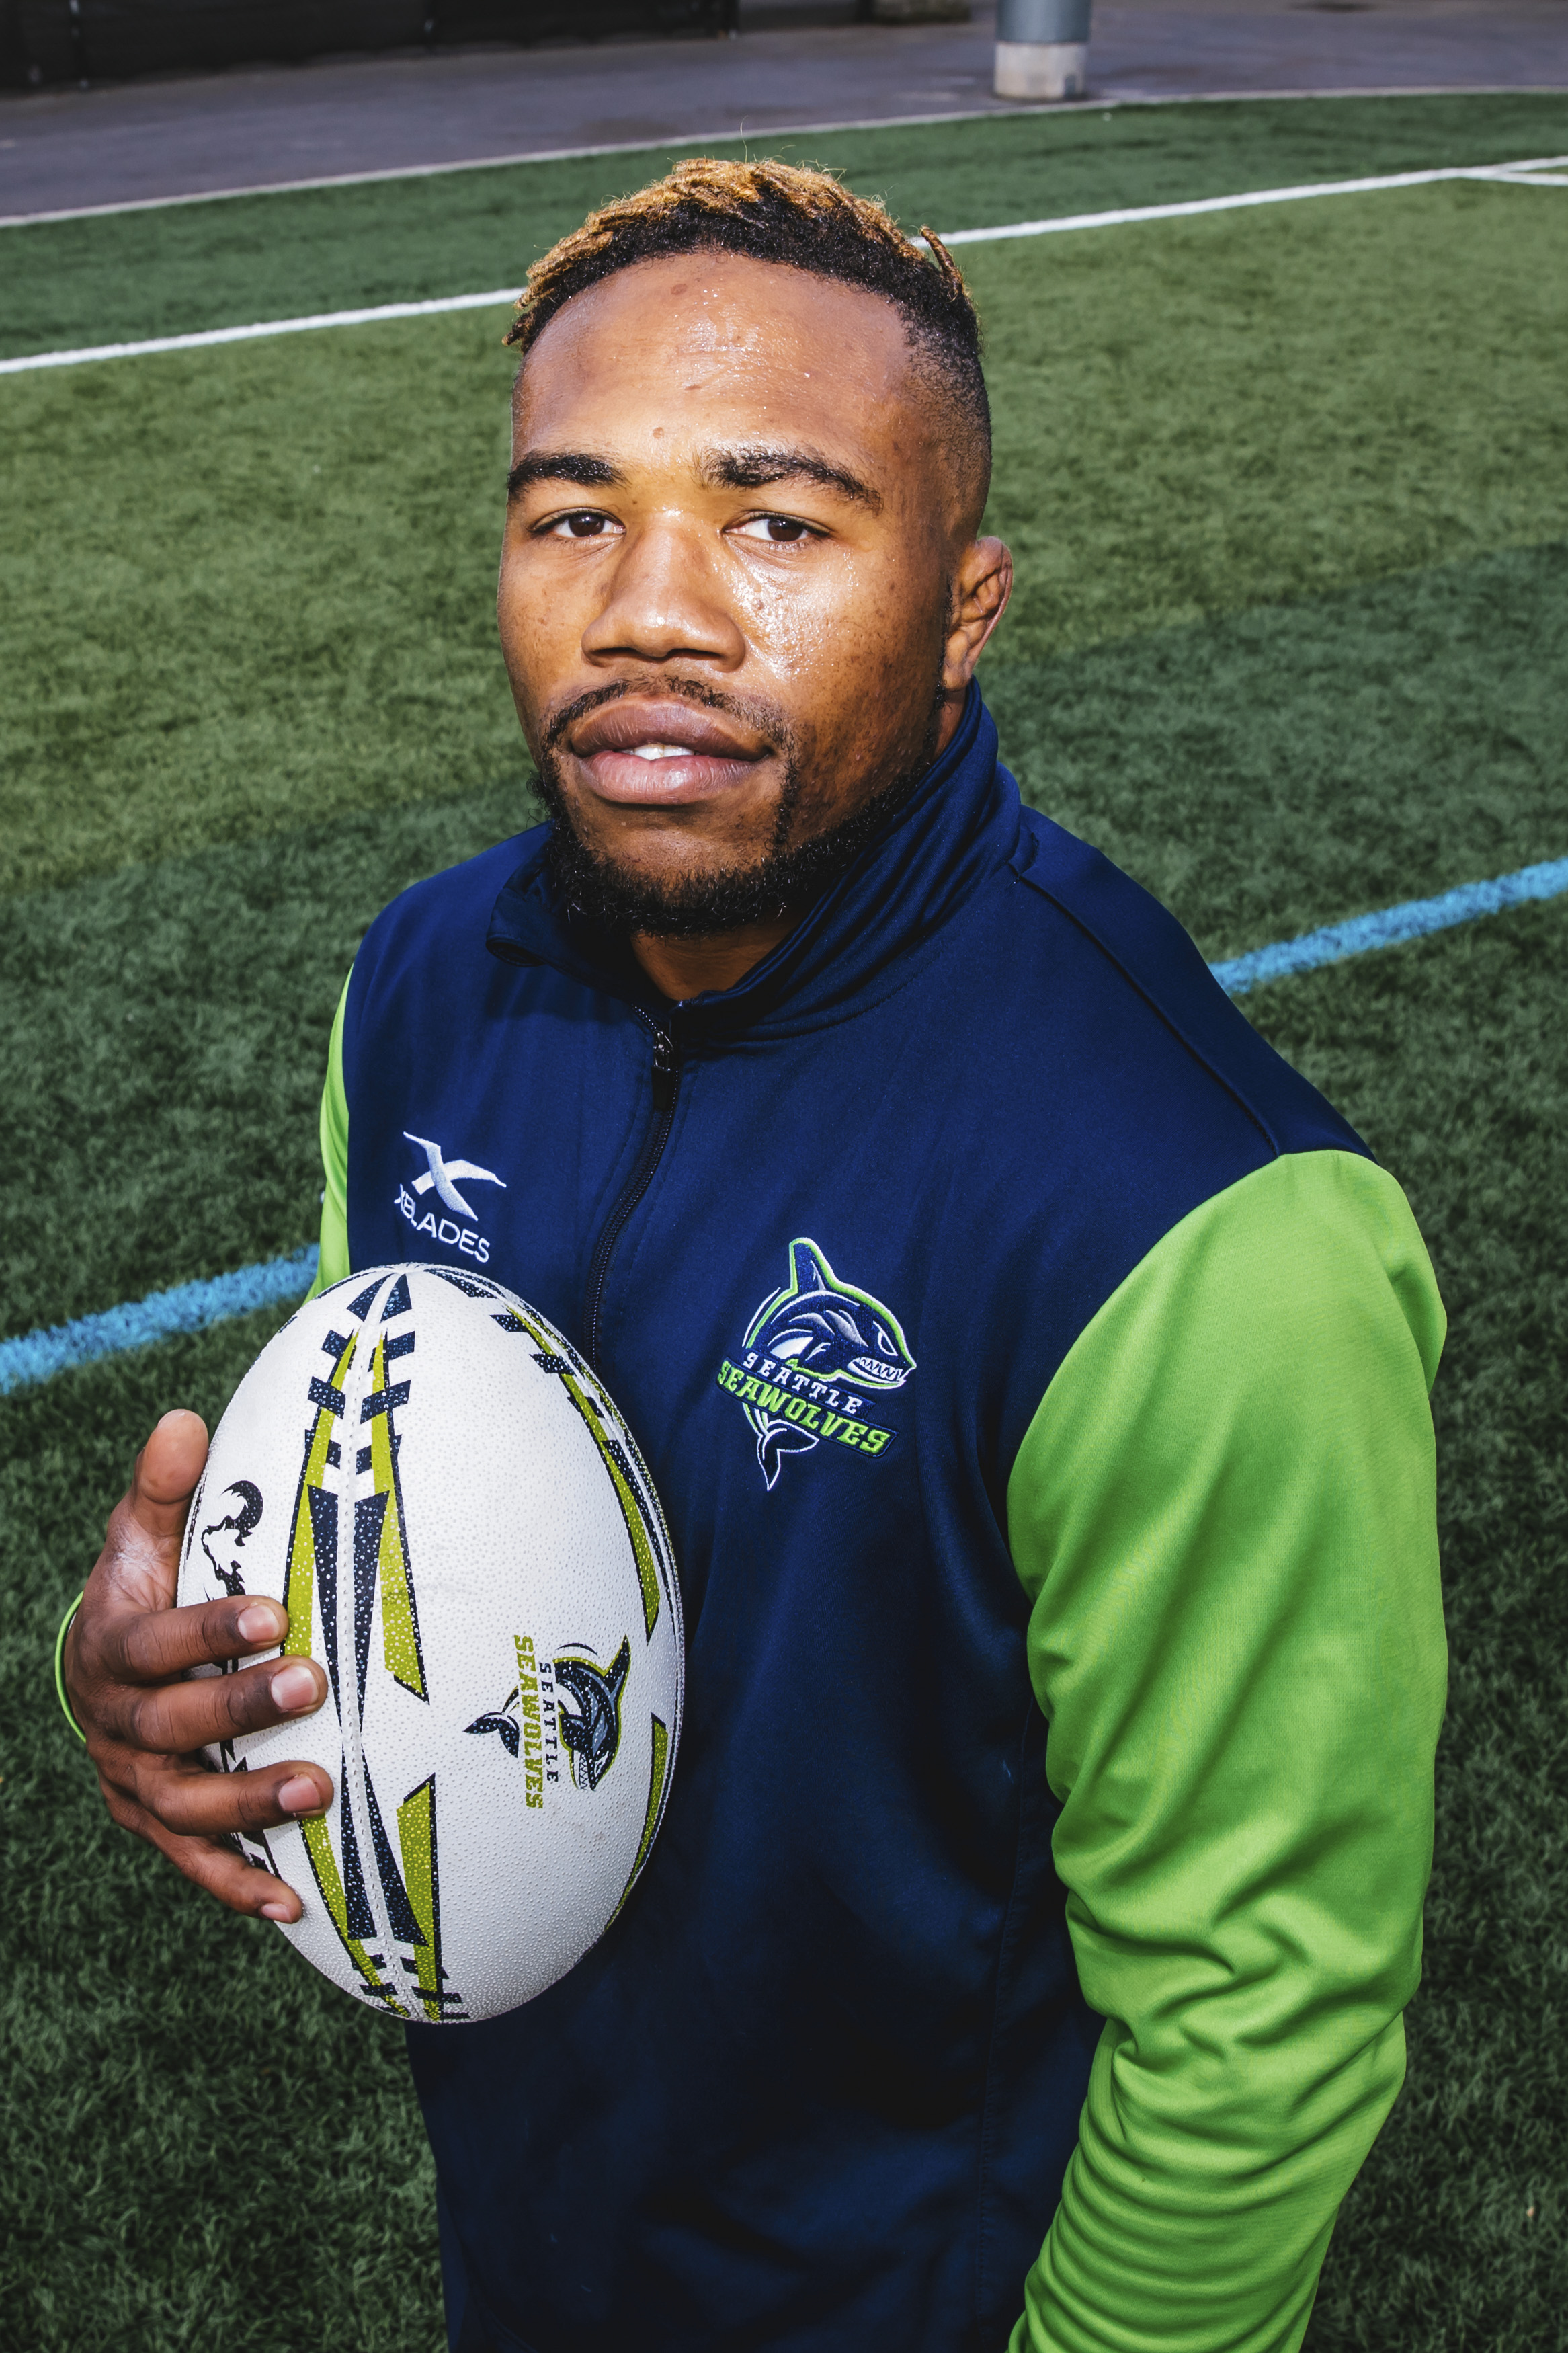 This handsome fella is Dion! Dion is 25 and is originally from Chicago Heights, Illinois. He plays Wing on the Seattle Seawolves and his favorite snack is cinnamon rolls. (Image: Sunita Martini / Seattle Refined).